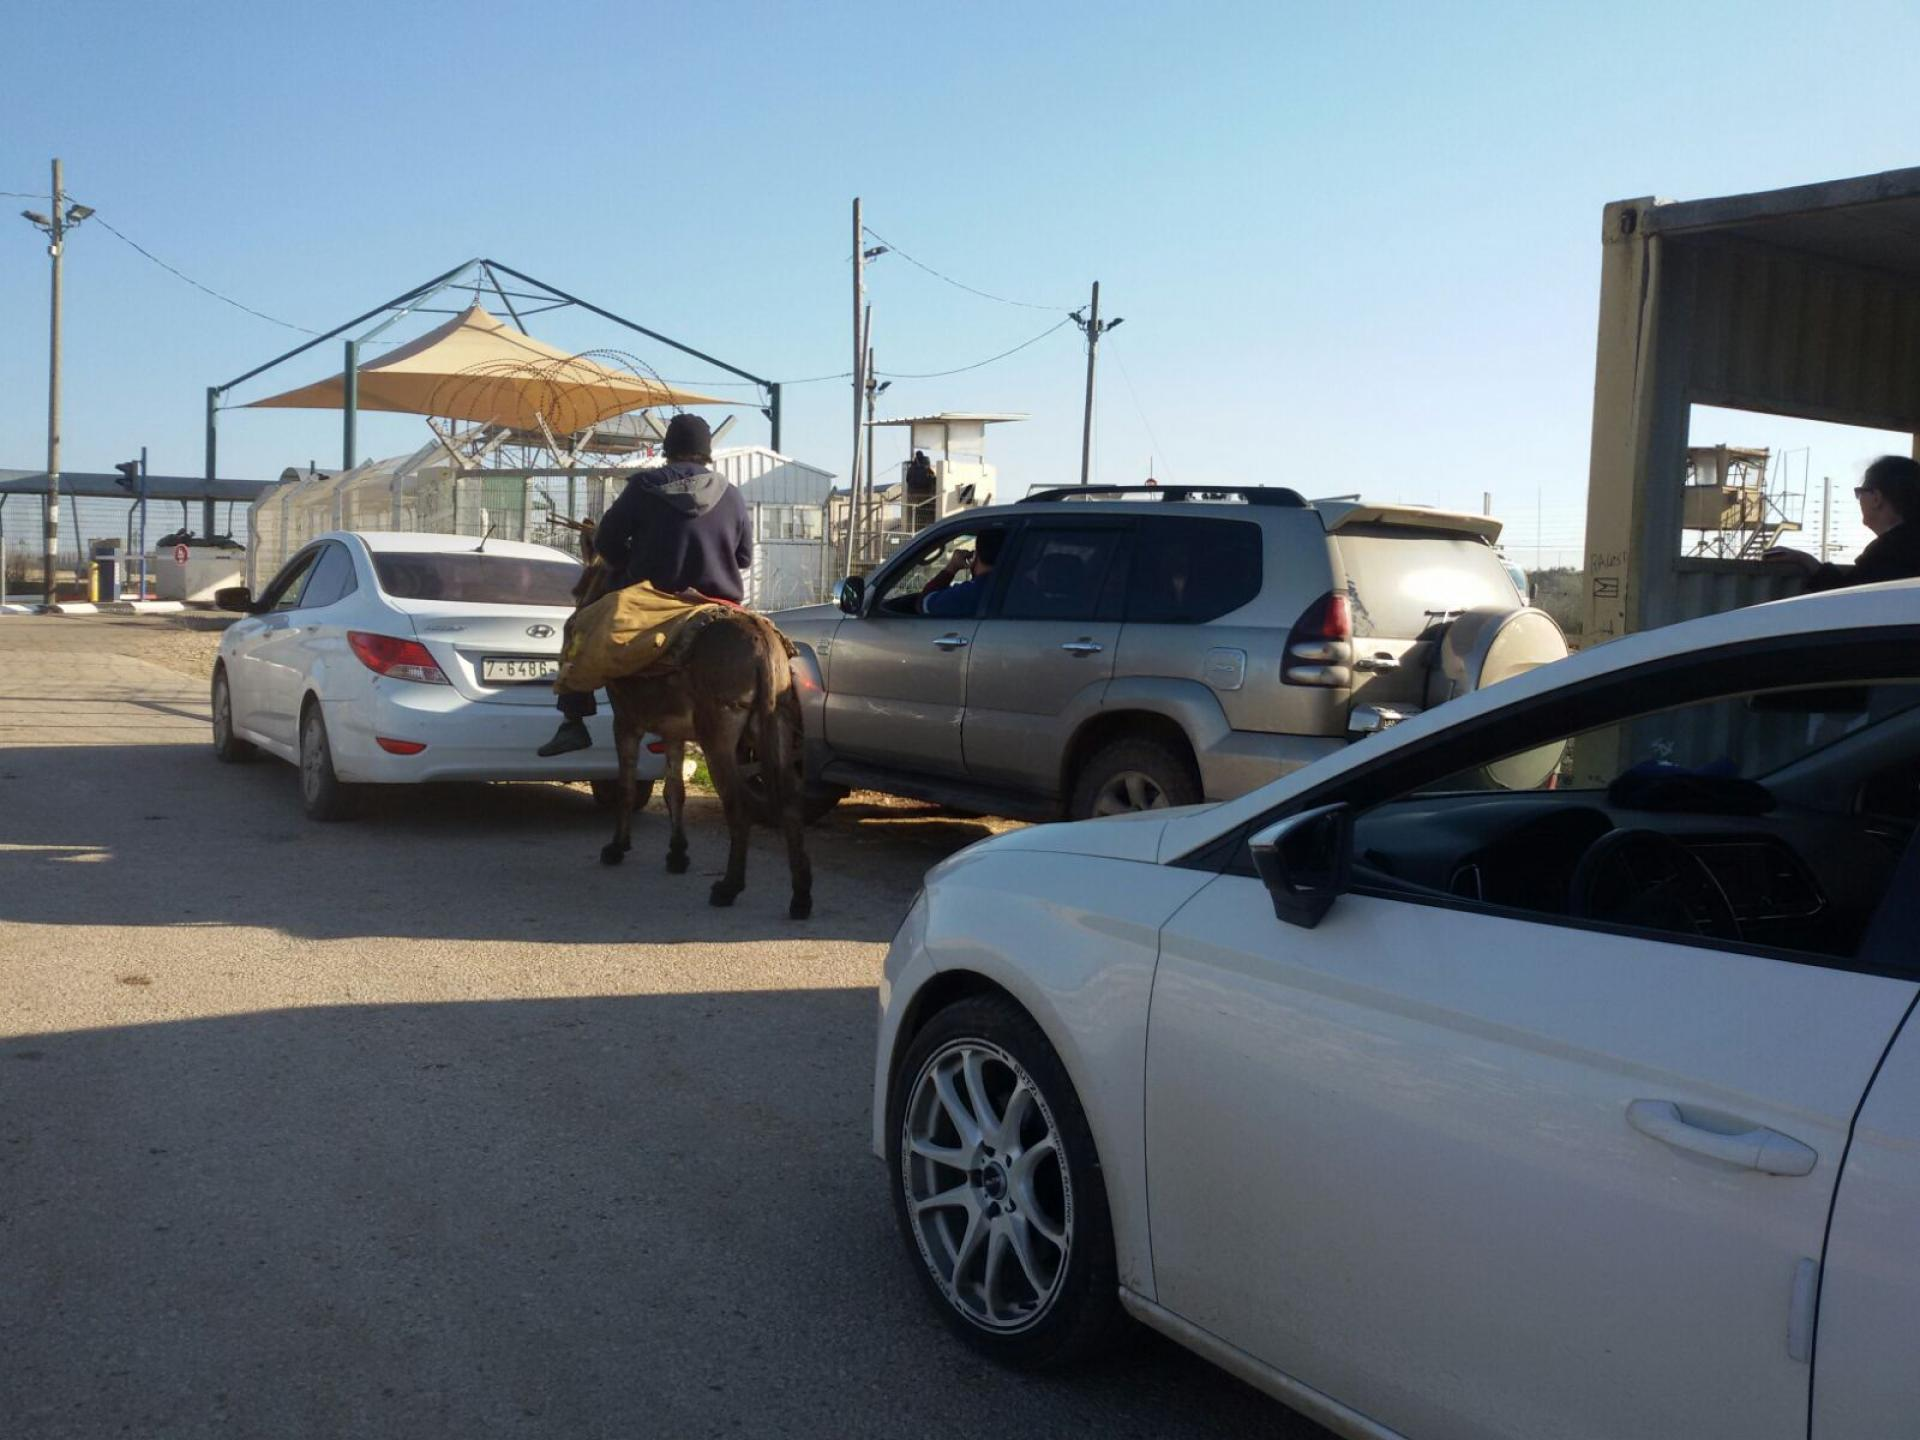 ura Checkpoint – Cars and a donkey waiting to cross